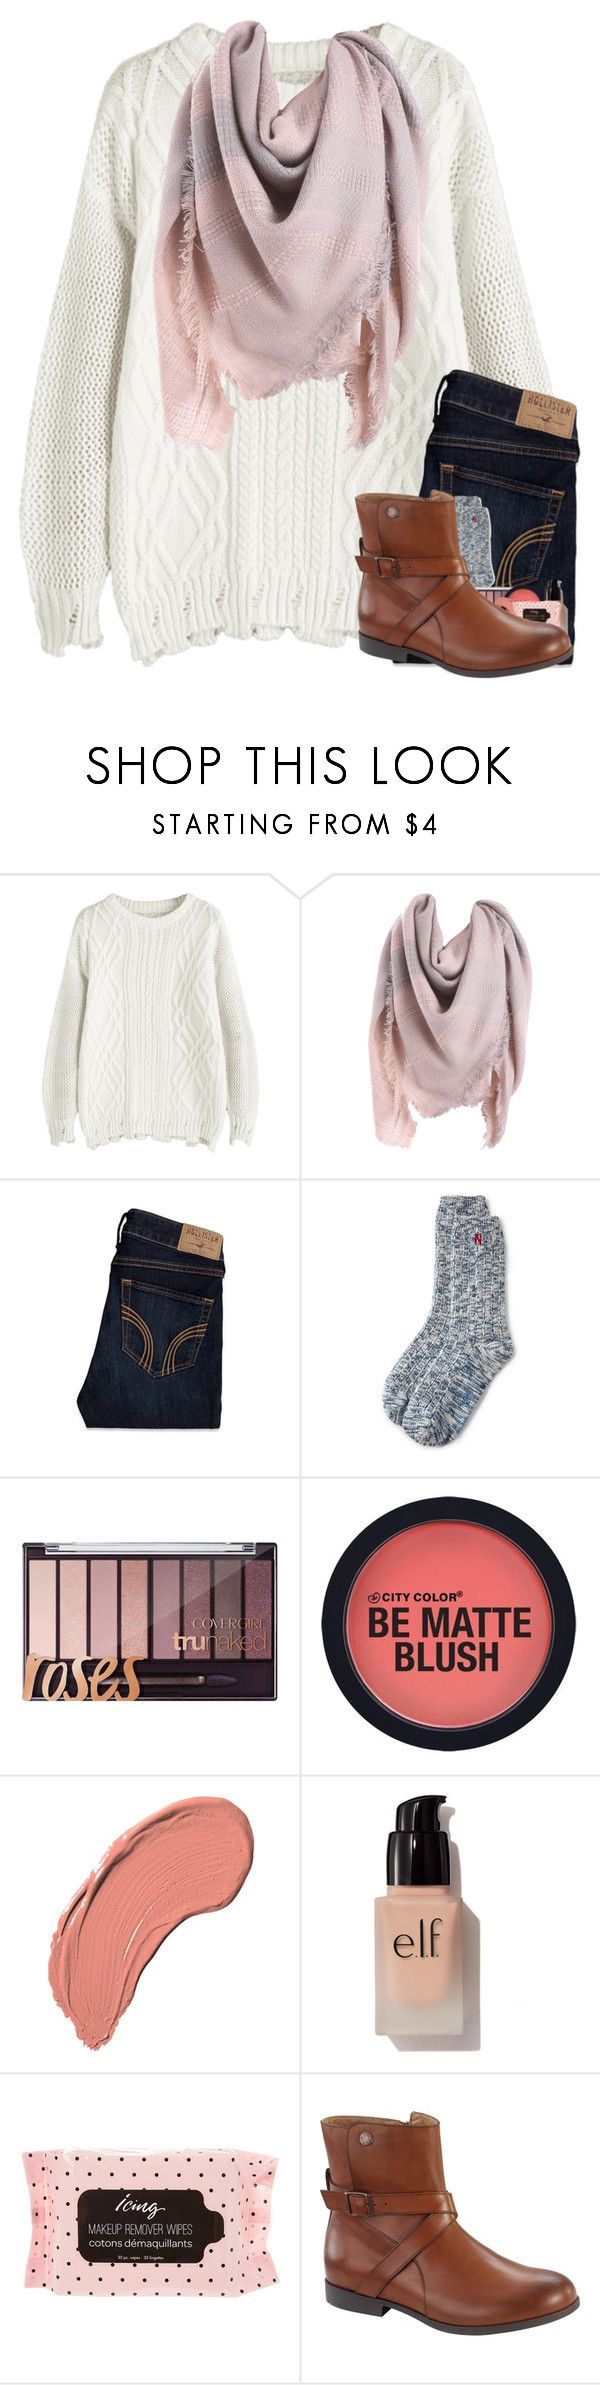 """""""ummmmm this set sucks"""" by arielforlife ❤ liked on Polyvore featuring Hollister Co., Lands' End, NYX, e.l.f., Birkenstock, men's fashion and menswear"""